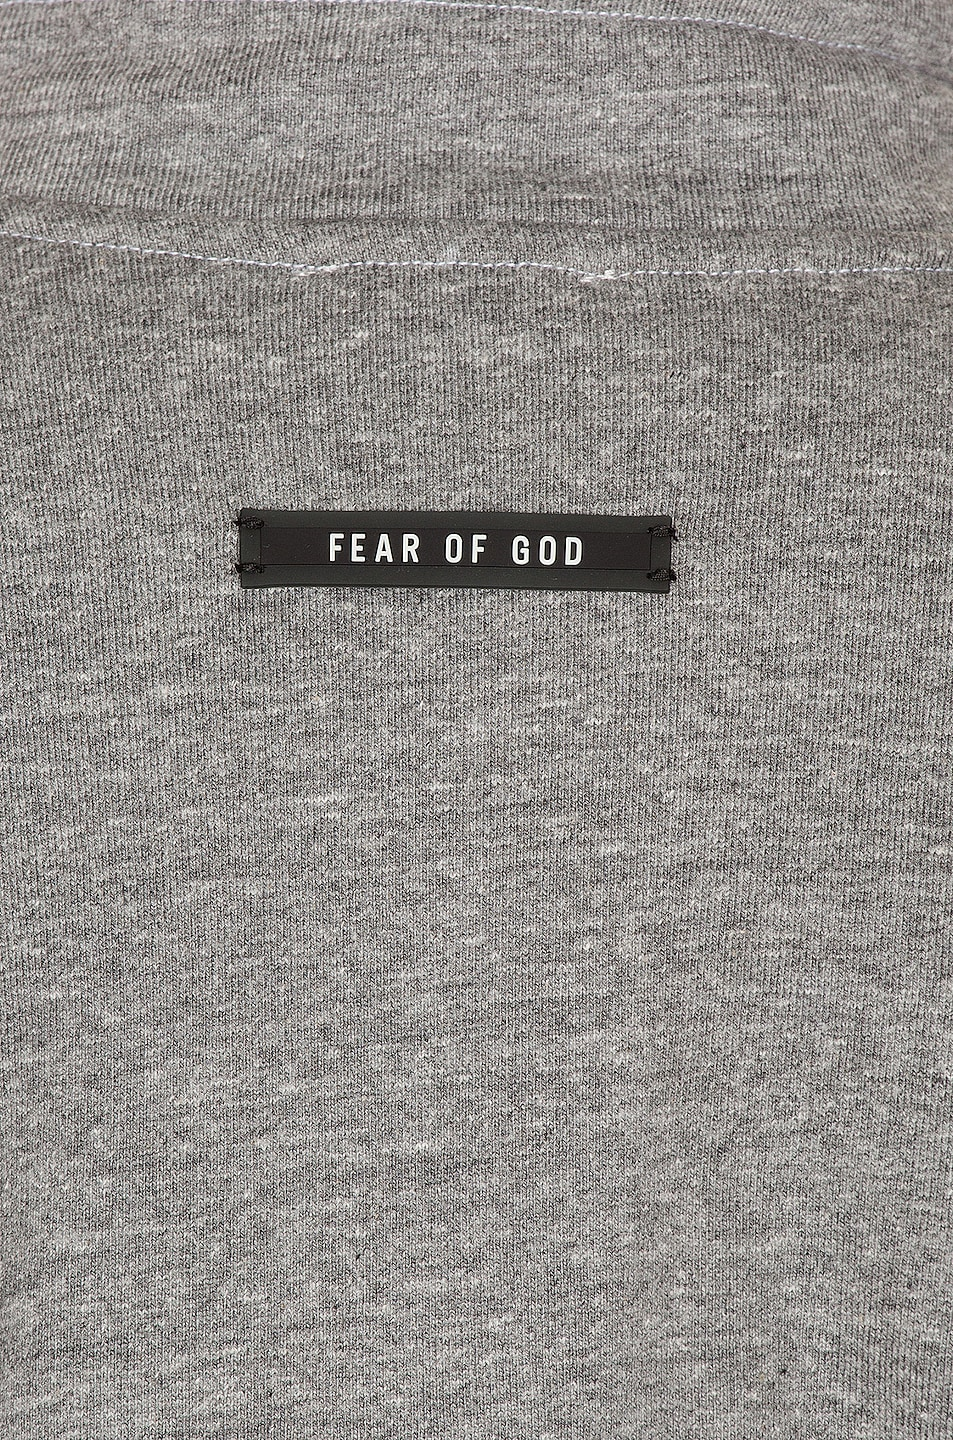 Image 5 of Fear of God Mock Neck FG Pullover in Heather Grey & Black